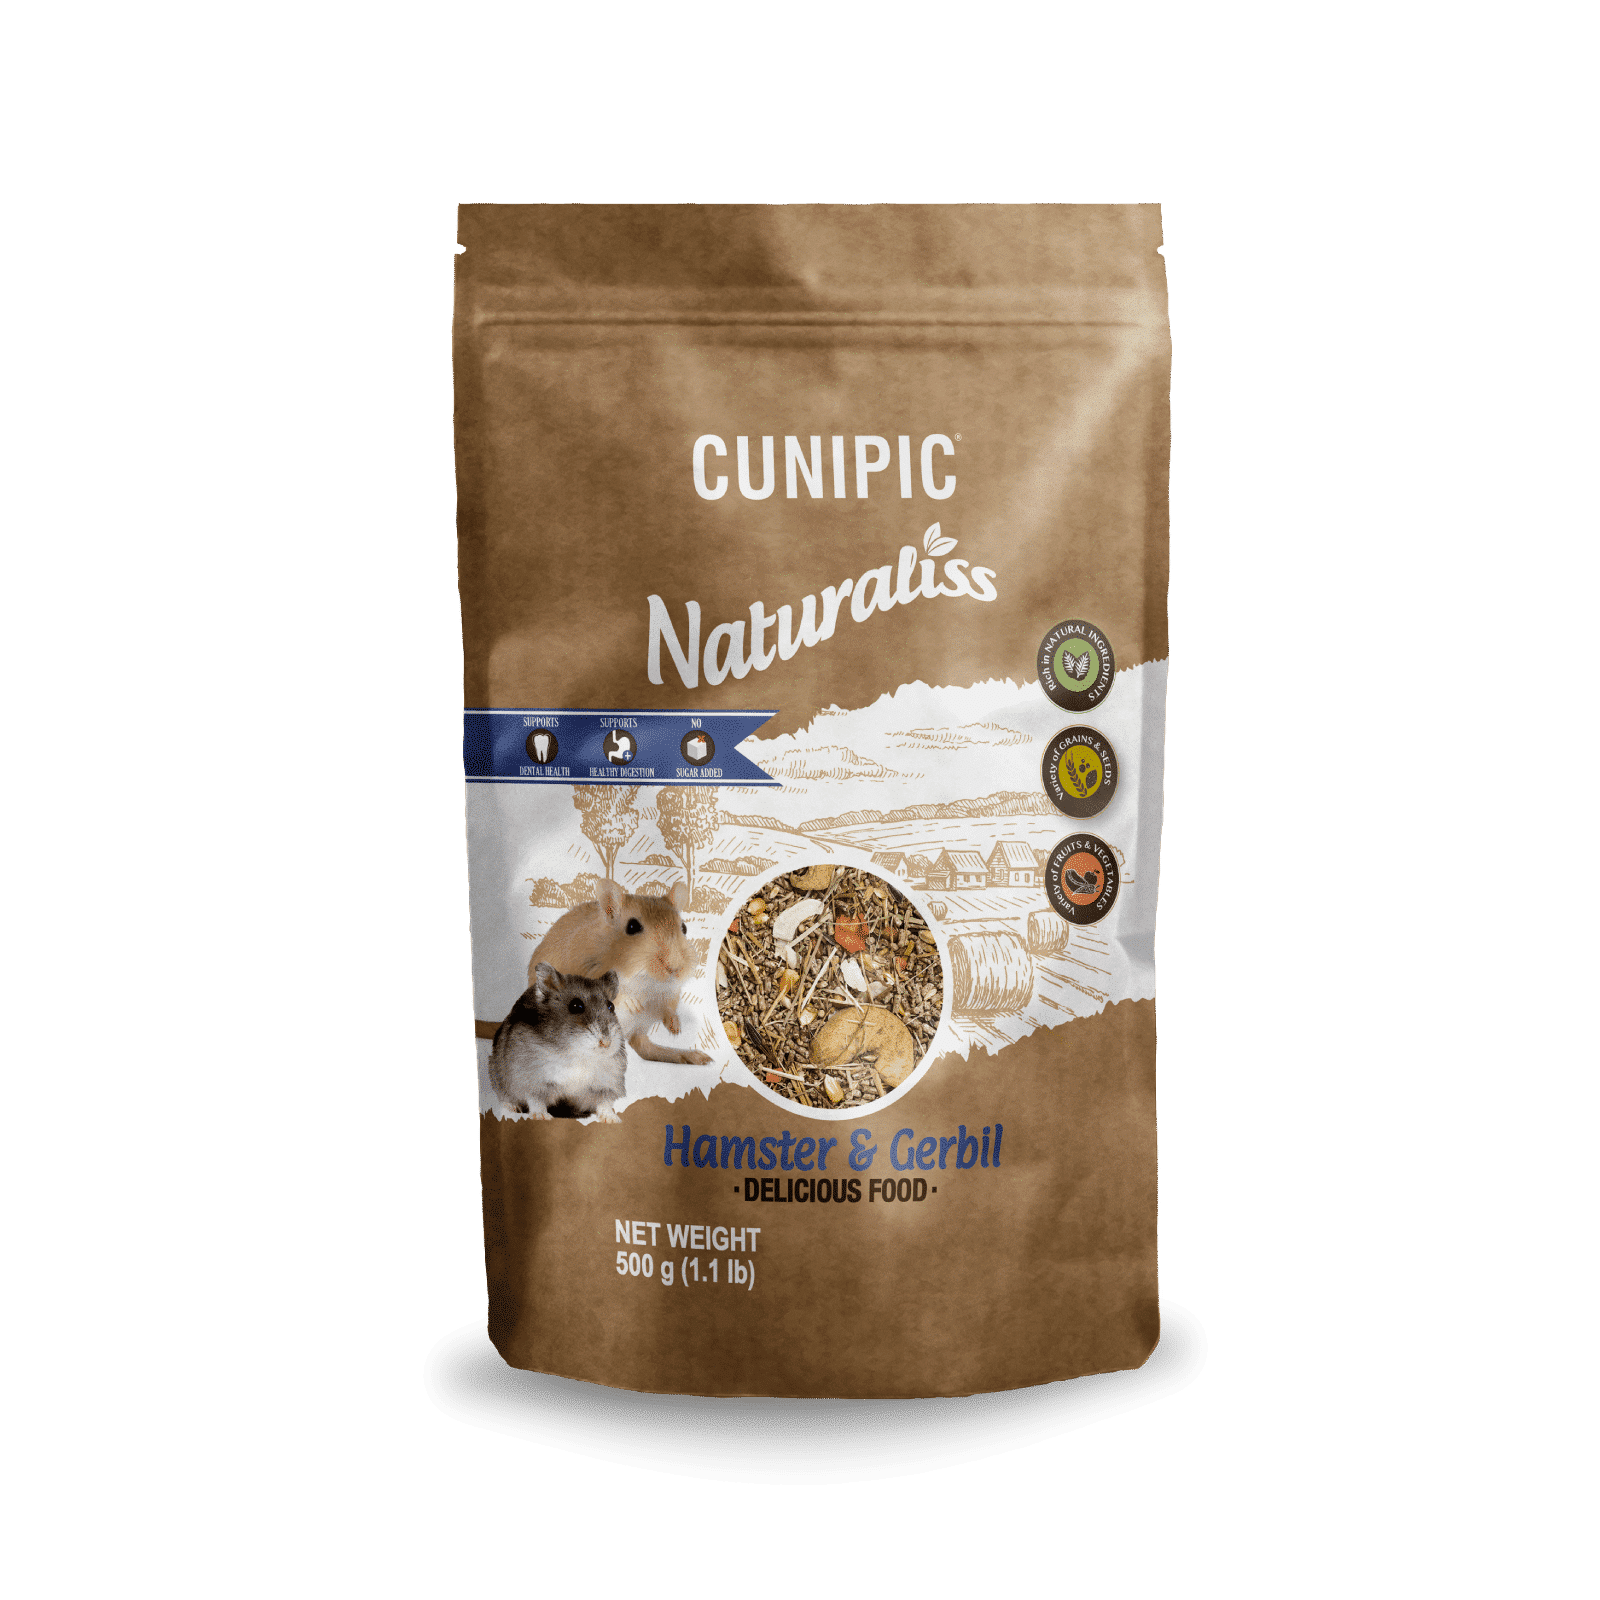 Naturaliss Hámster & Jerbo 500 g Cunipic